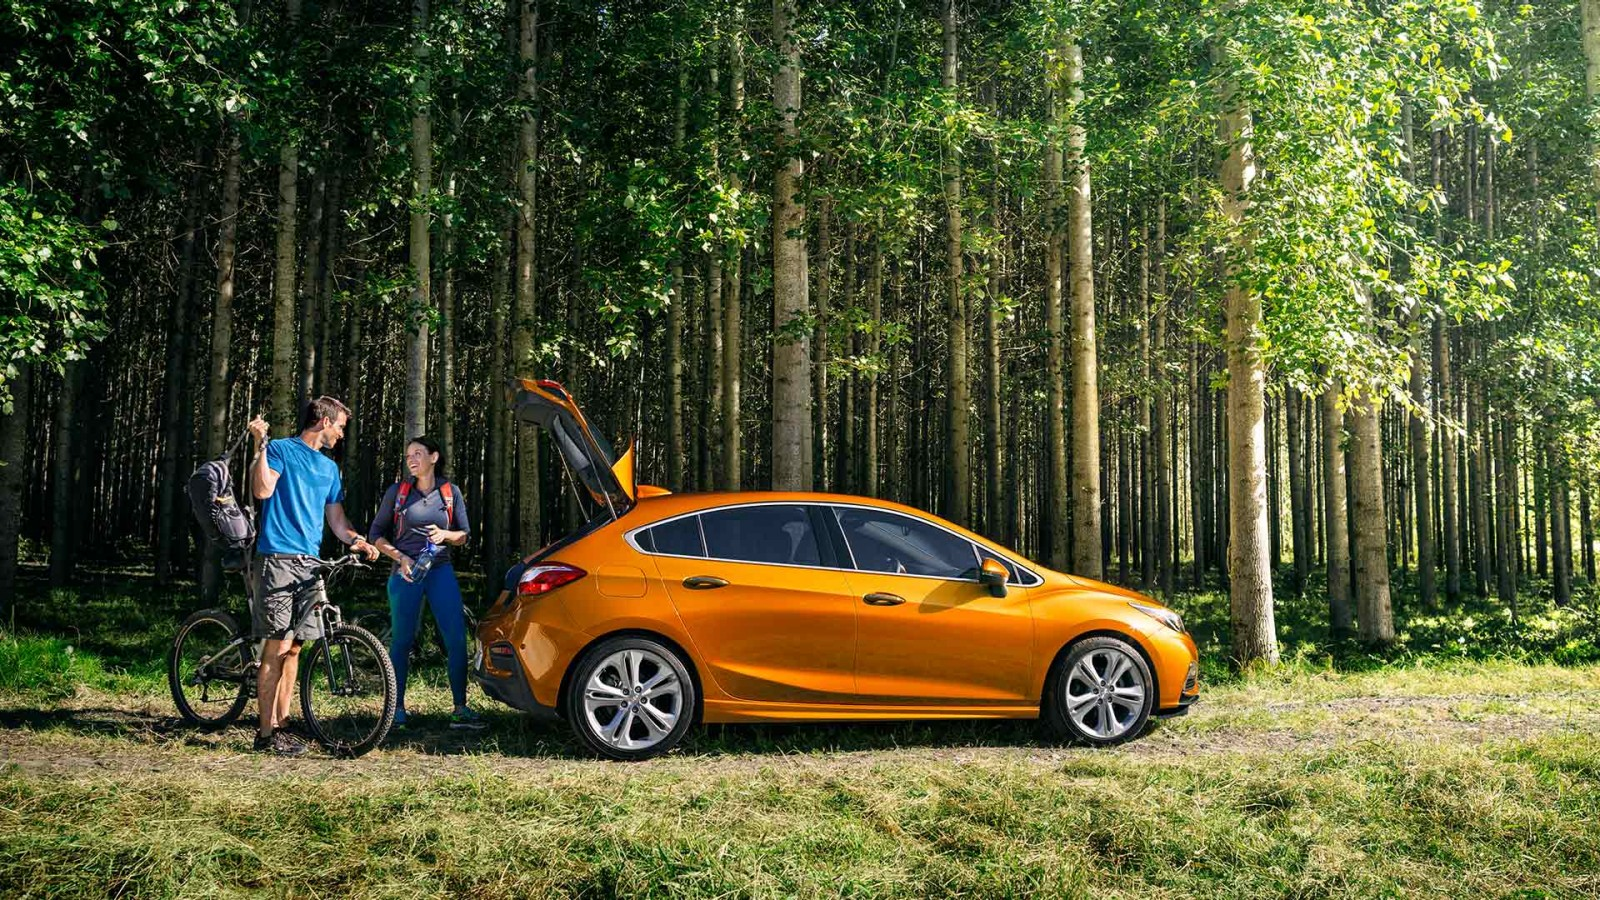 Chevy Cruze 2017 a la venta cerca de Washington, DC